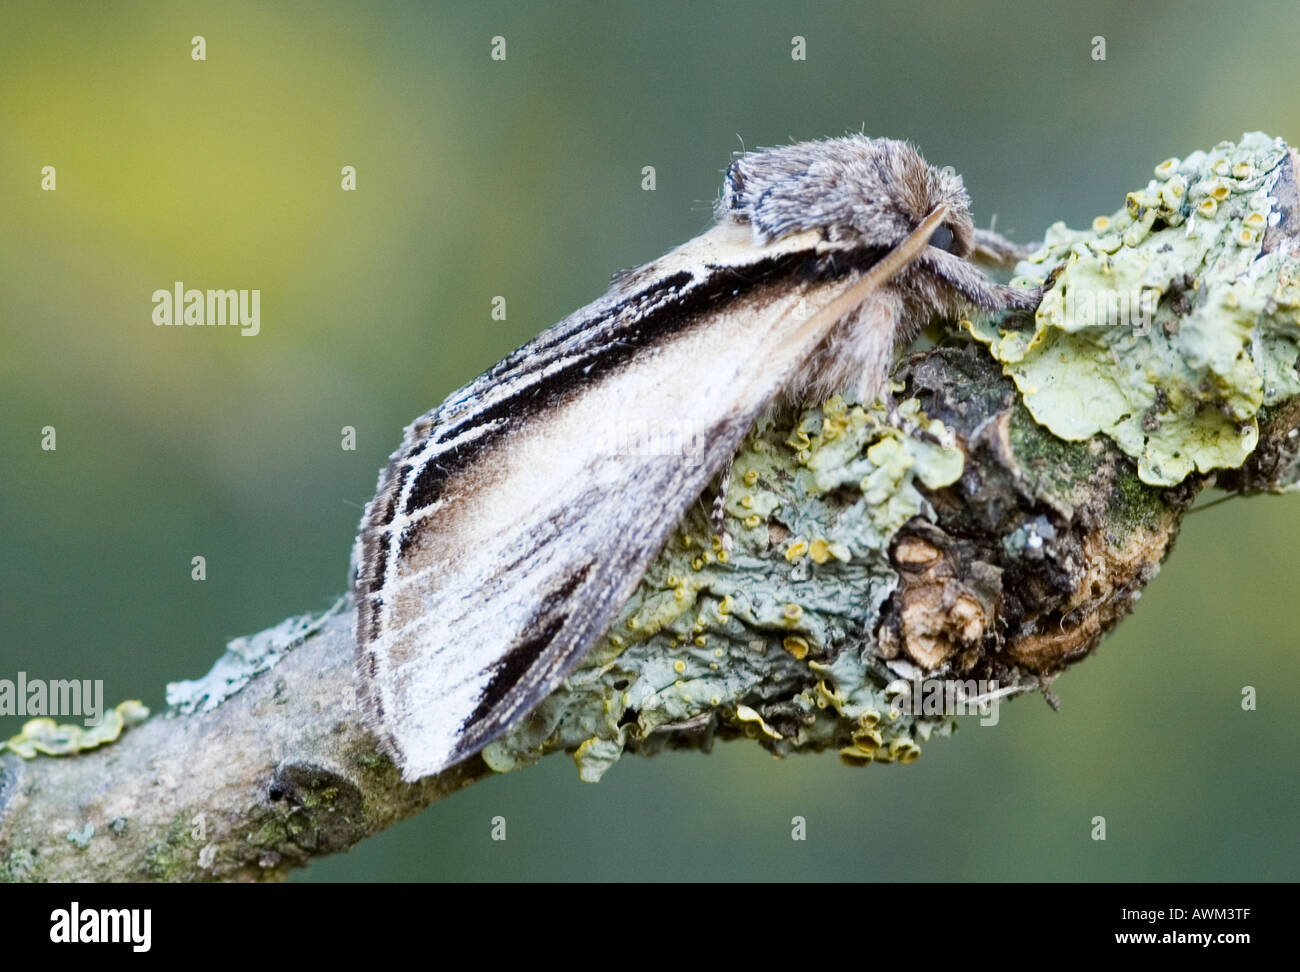 SWALLOW PROMINENT MOTH PHEOSIA TREMULA ON TREE BRANCH - Stock Image